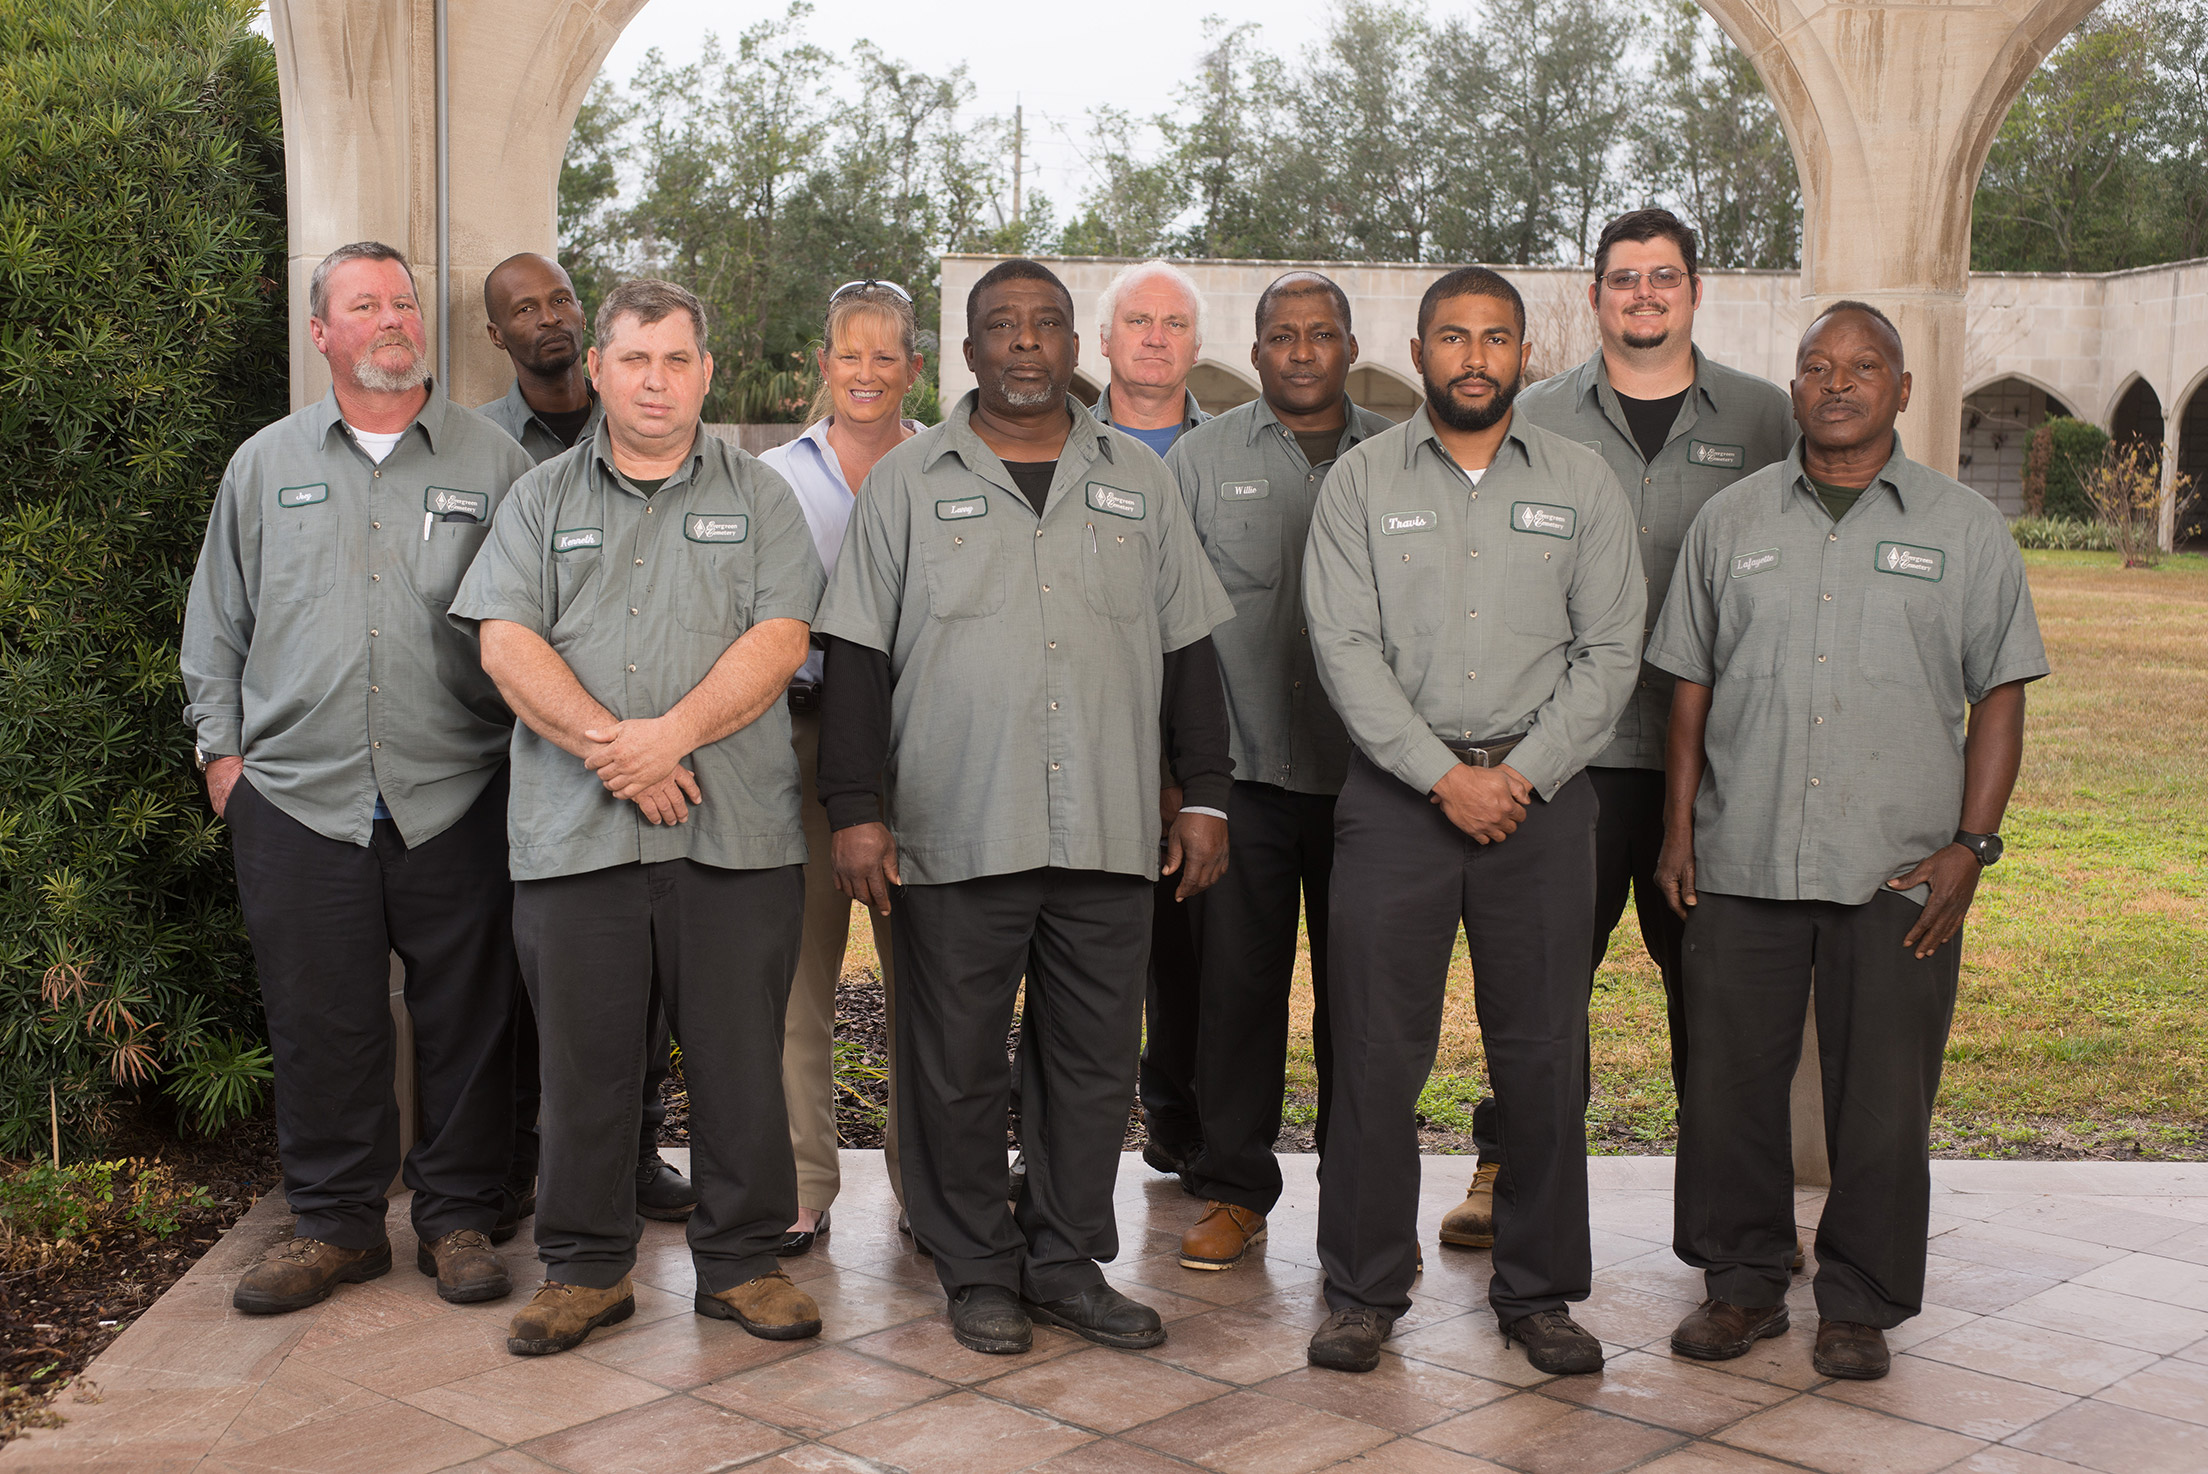 Evergreen Service and Maintenance Team